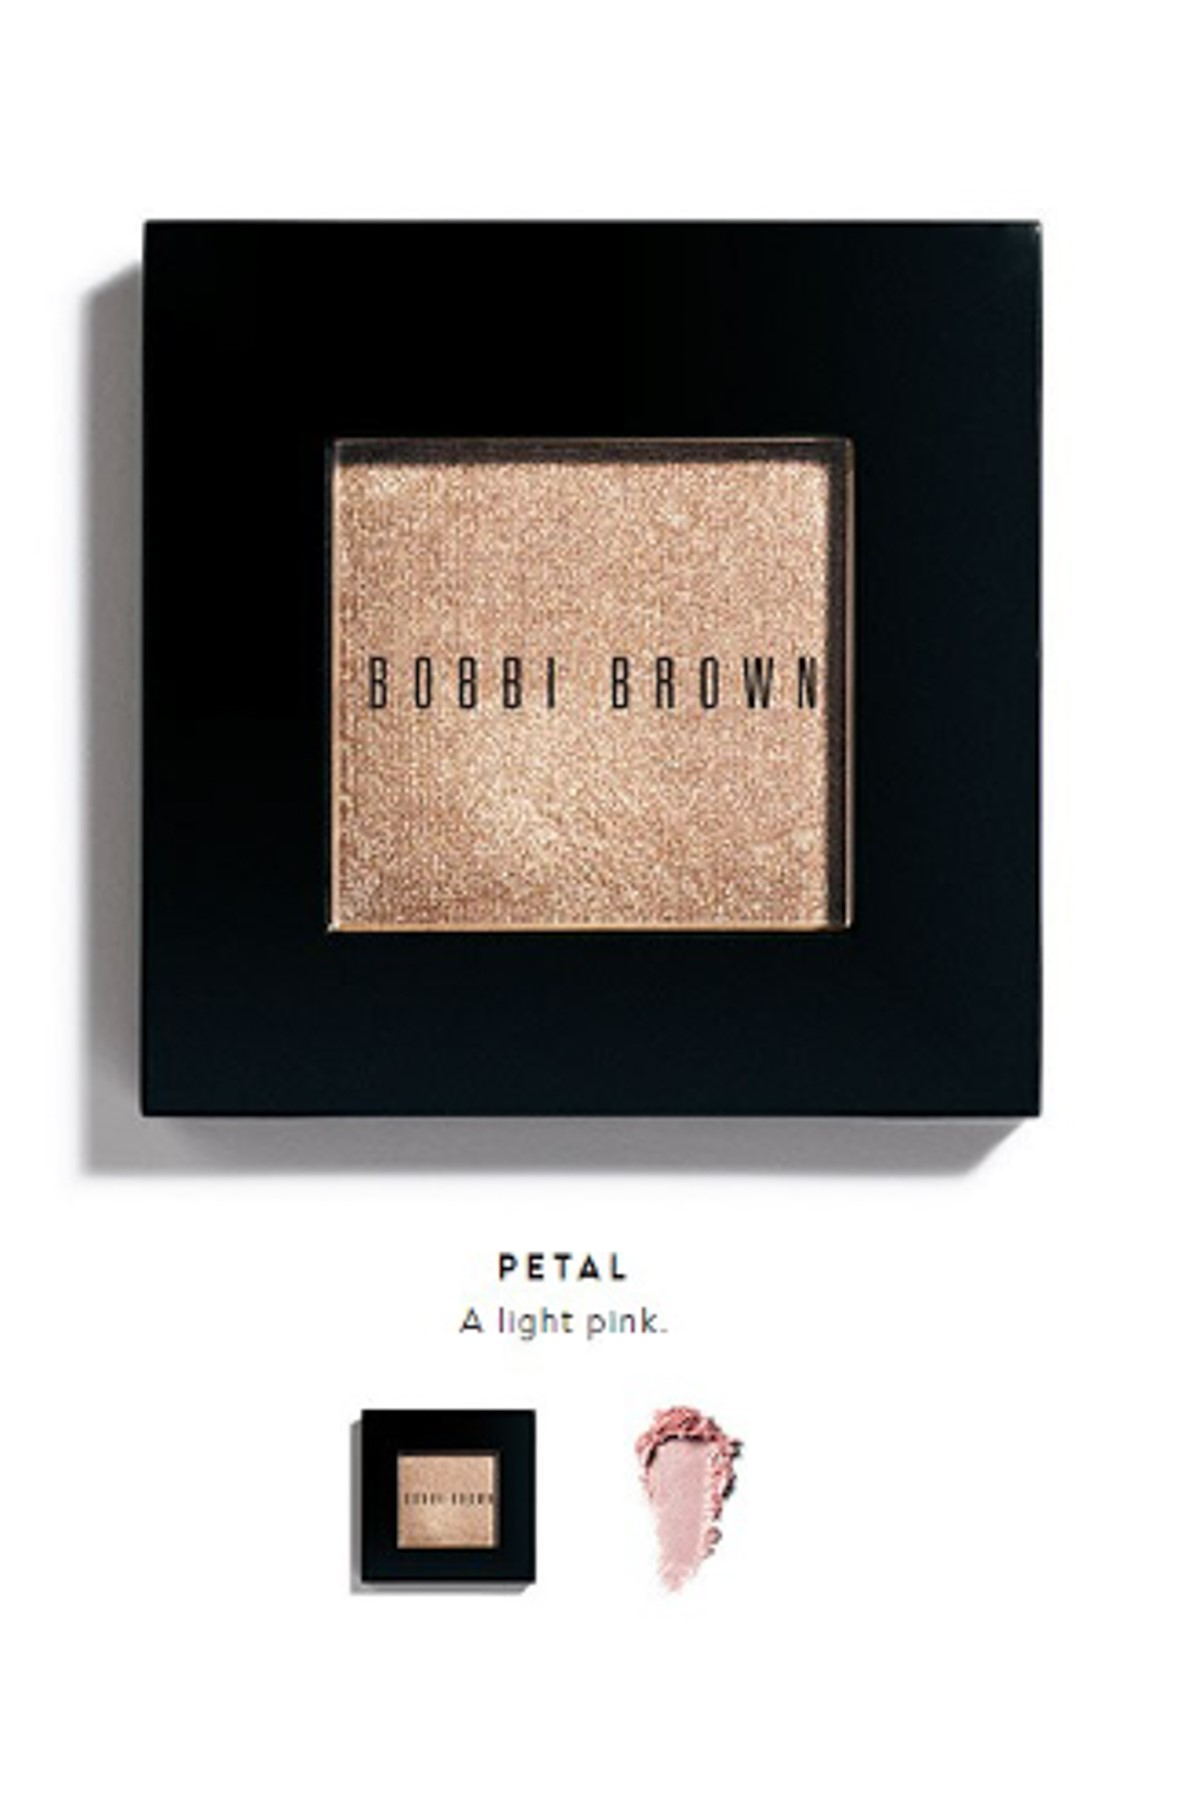 Bobbı Brown Göz Farı – Shimmer Wash Eye Shadow Petal 716170061993 – 80.11 TL